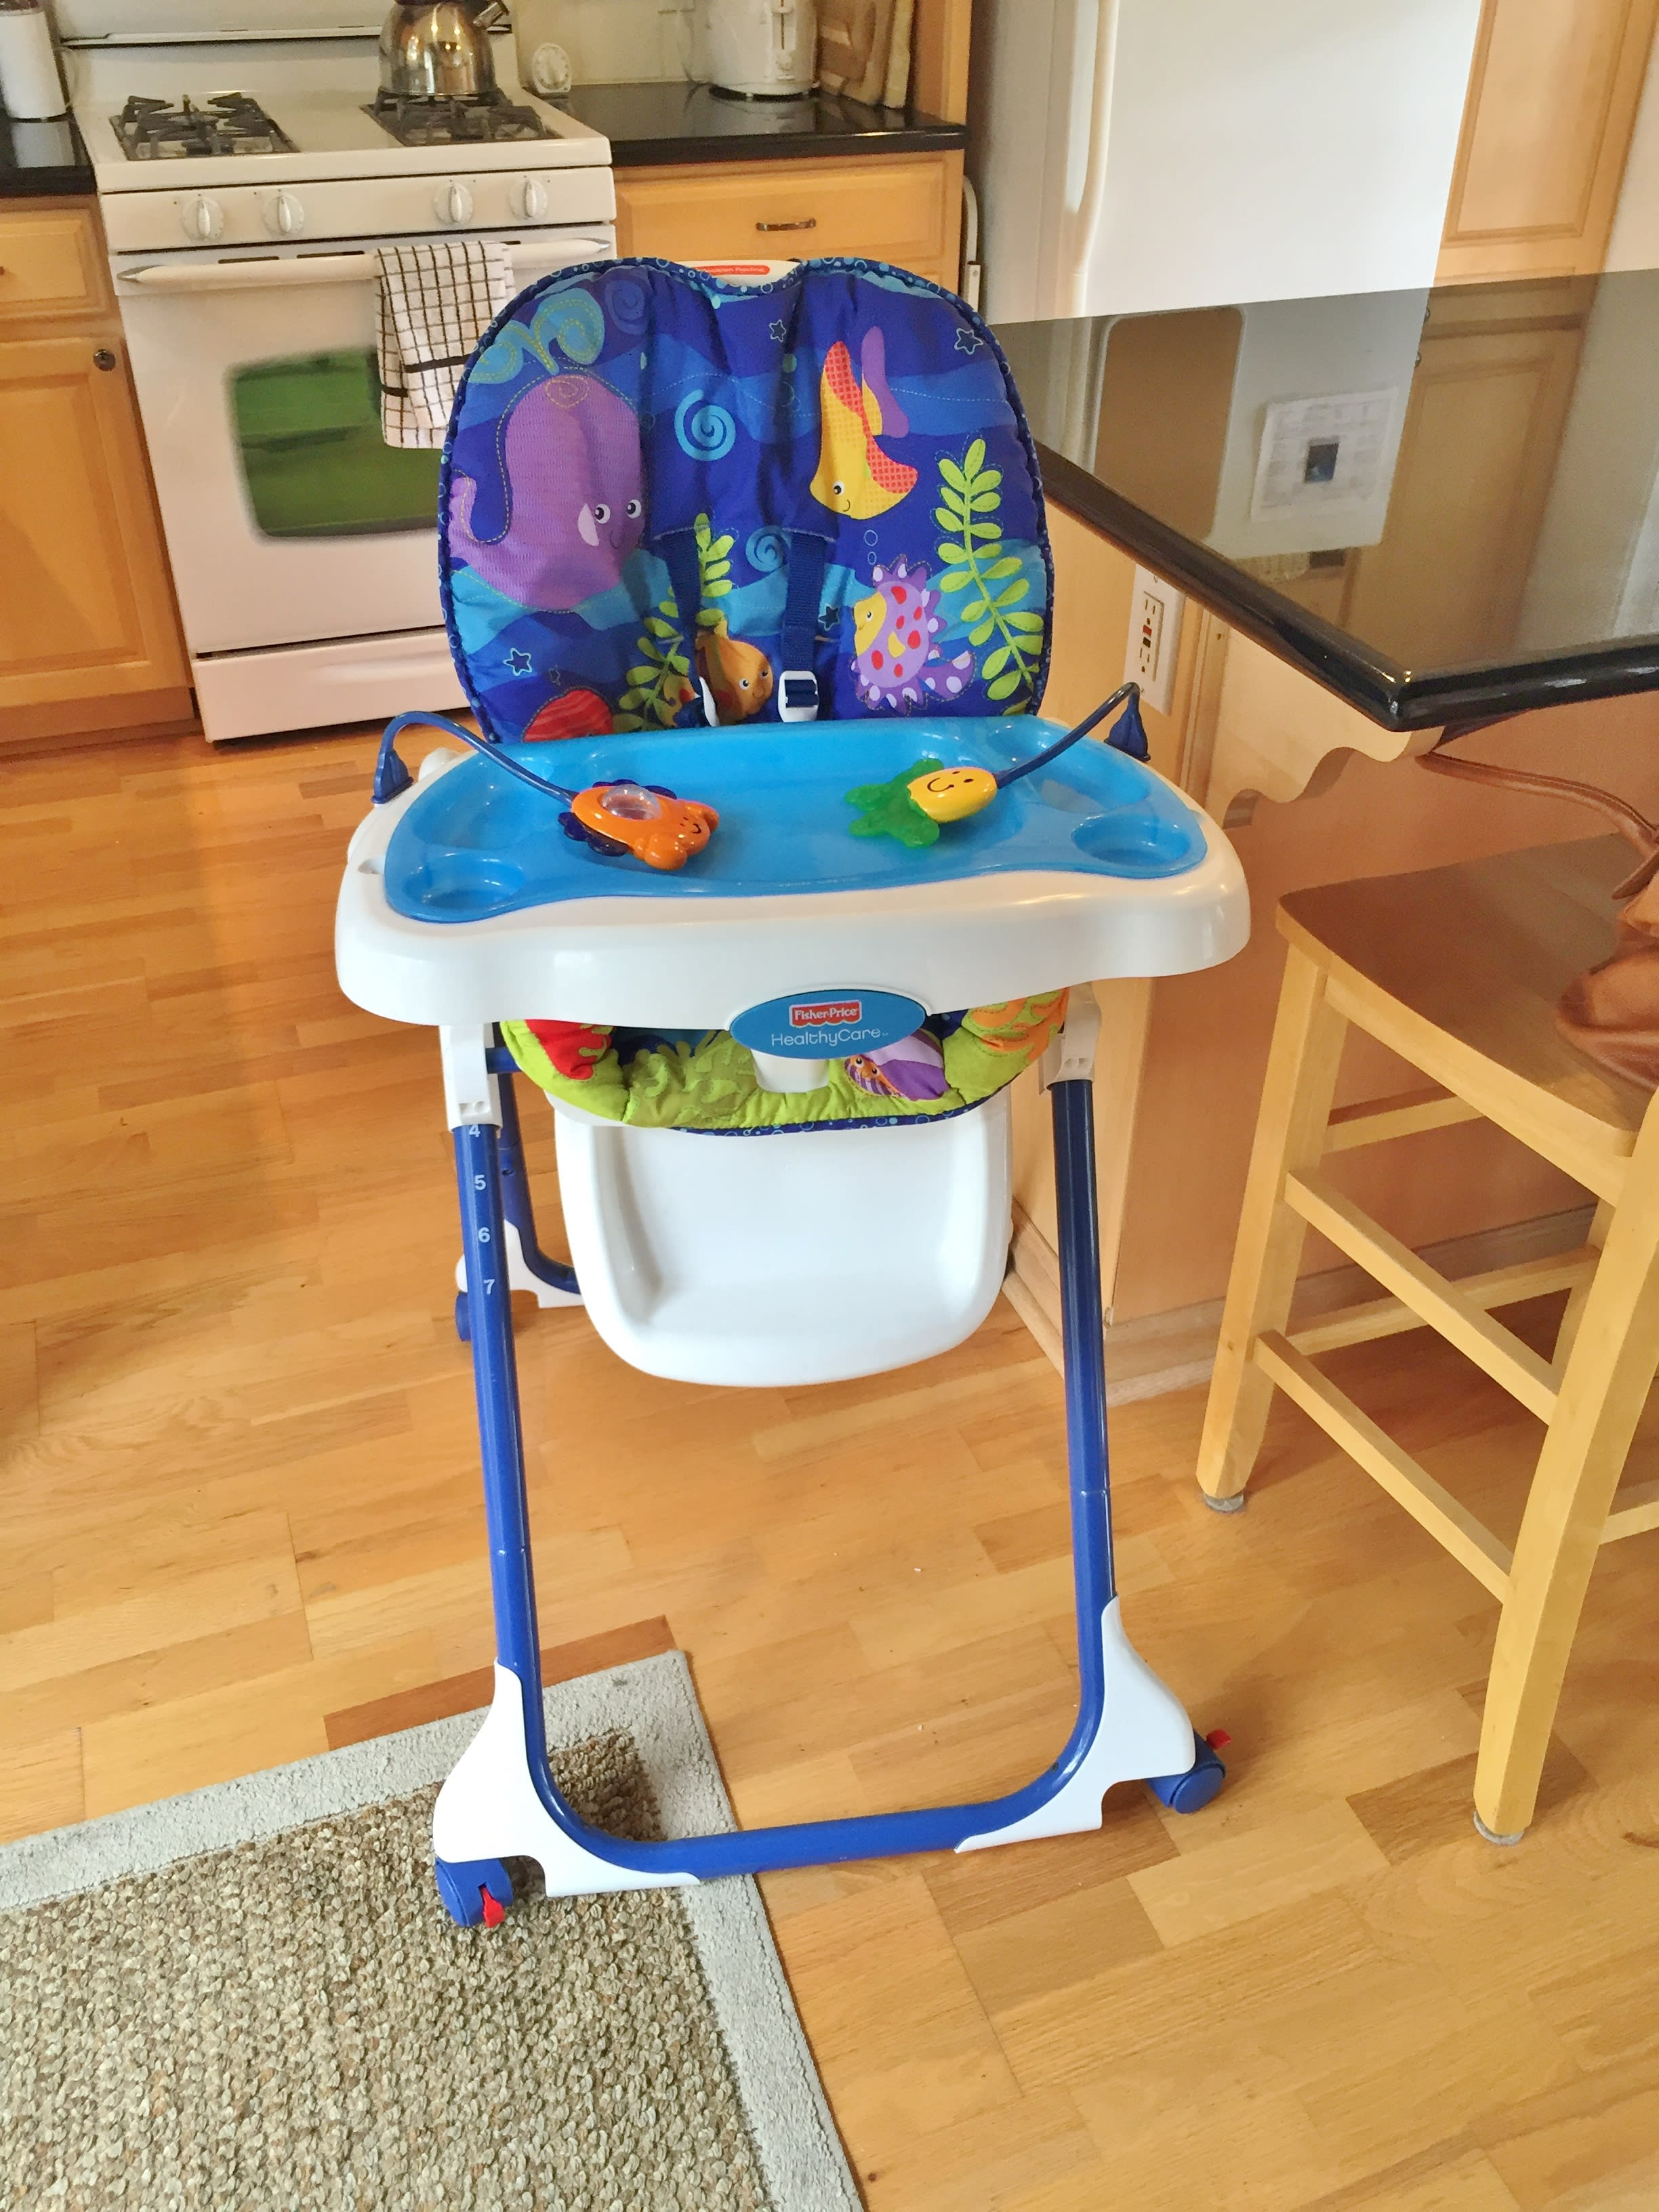 A high chair will be provided for the little ones.